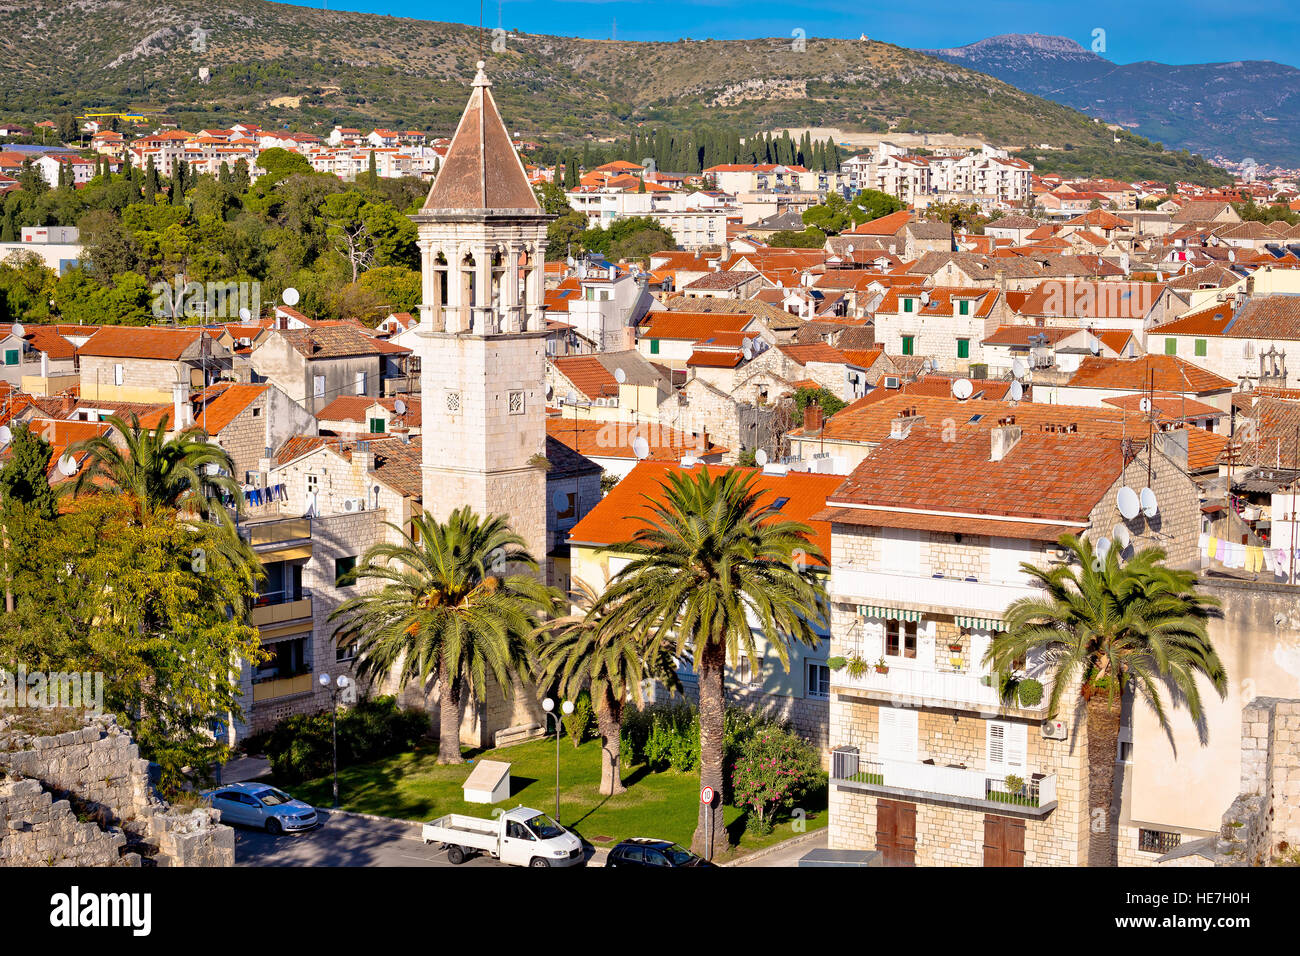 Historic town of Trgogir rooftops view, UNESCO site in Dalmatia, Croatia Stock Photo